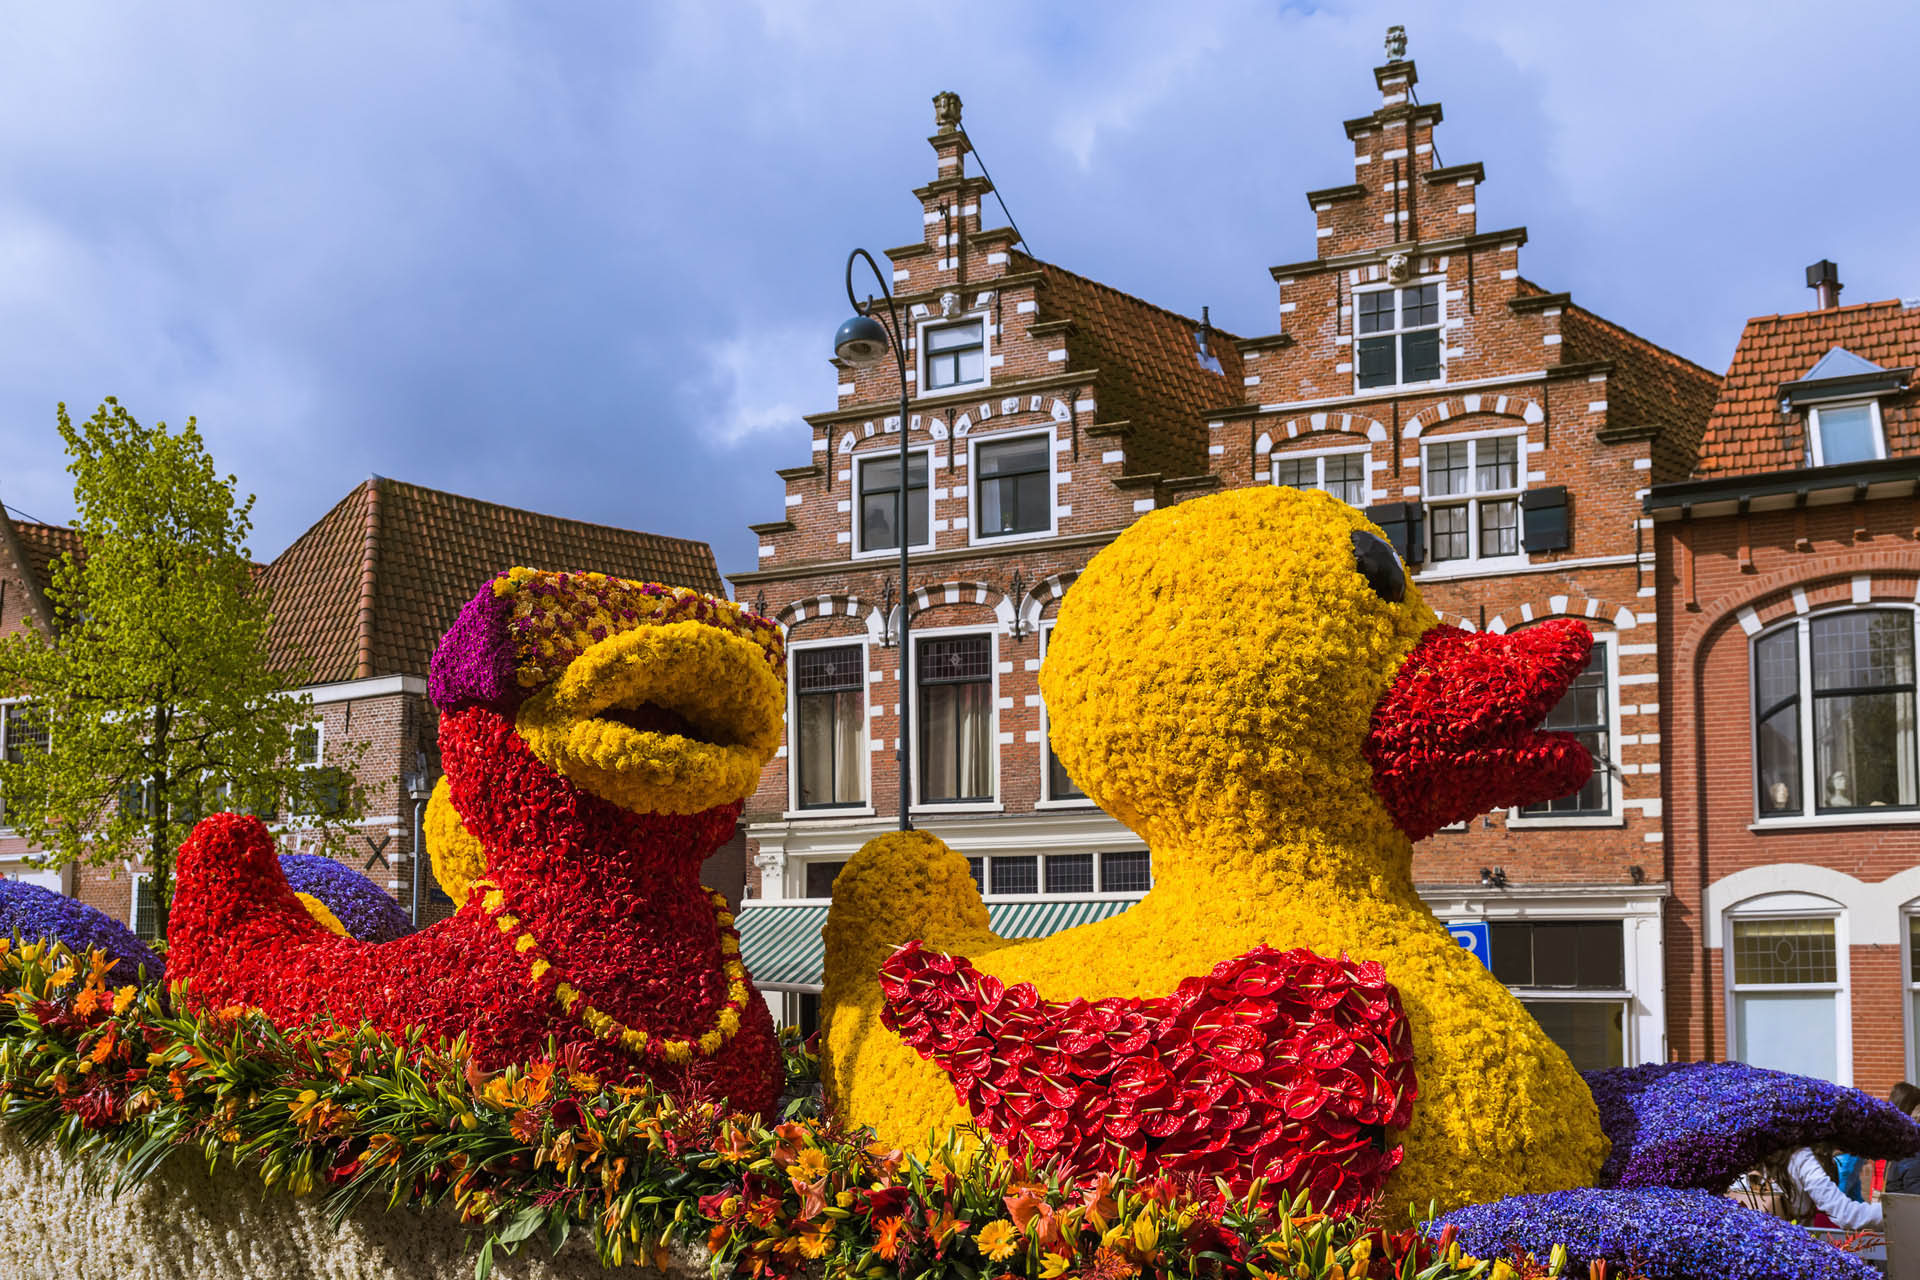 The Amsterdam Festival Is The Place To Be This Summer!